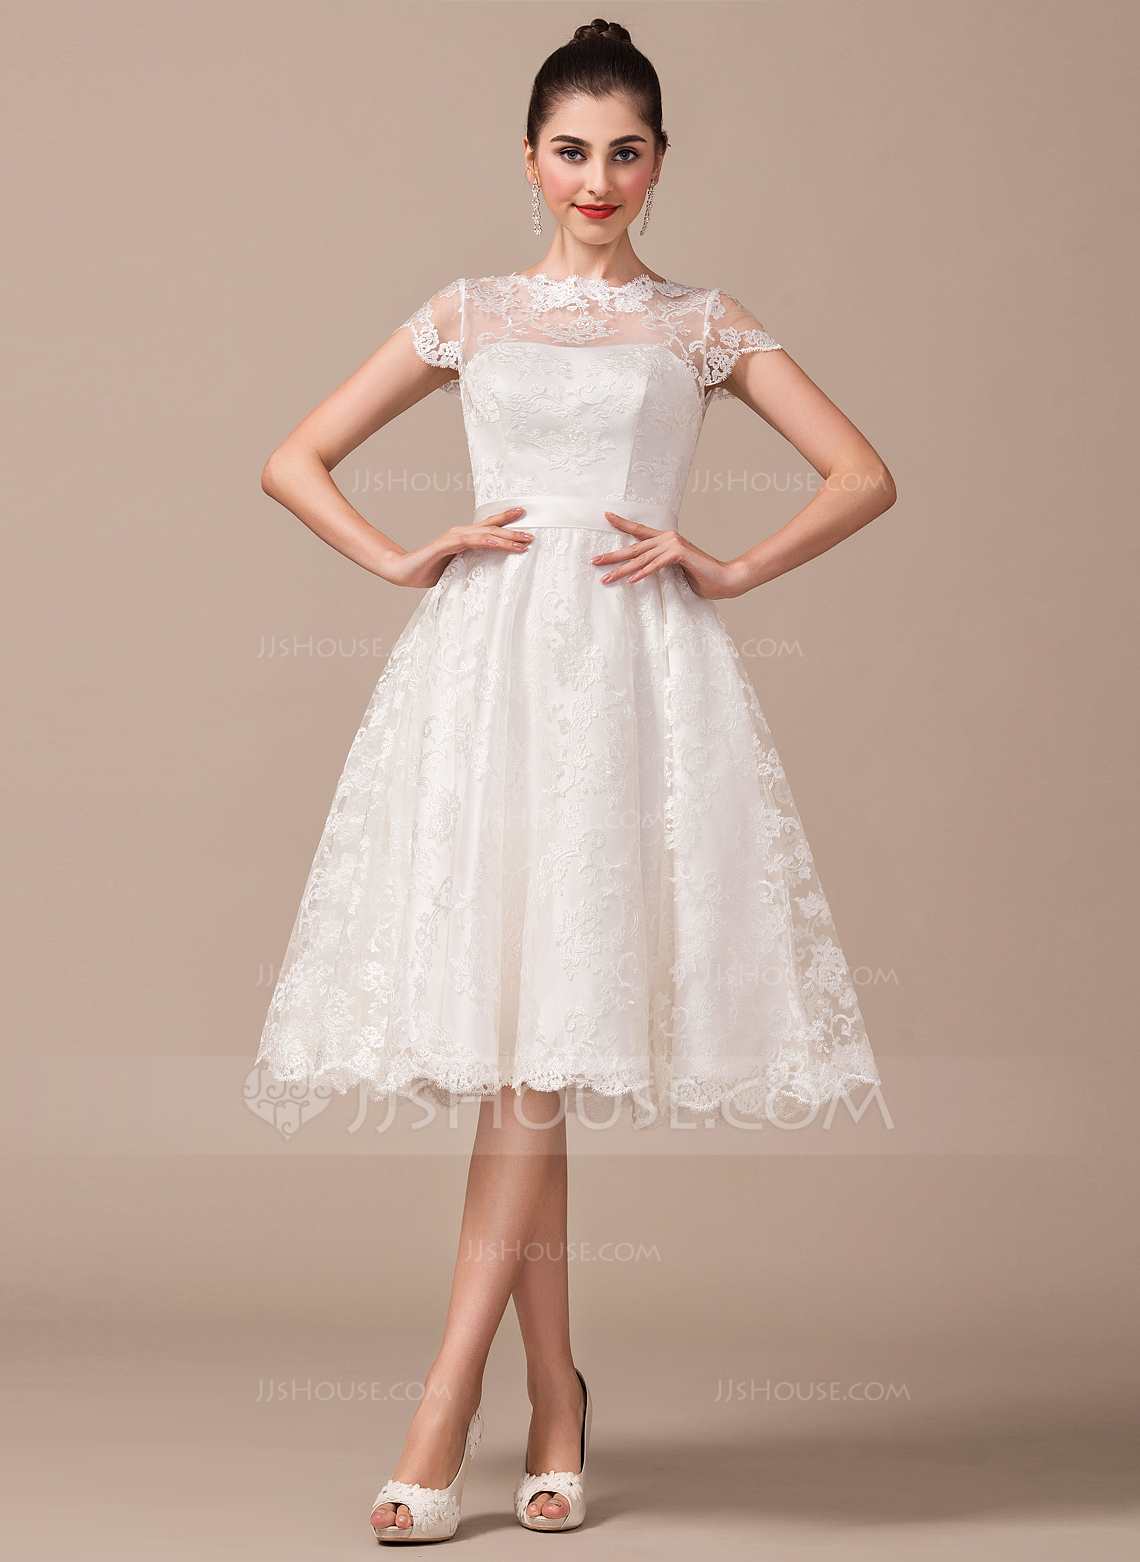 Outfit Trauzeugin Standesamt A Line Princess Scoop Neck Knee Length Lace Wedding Dress